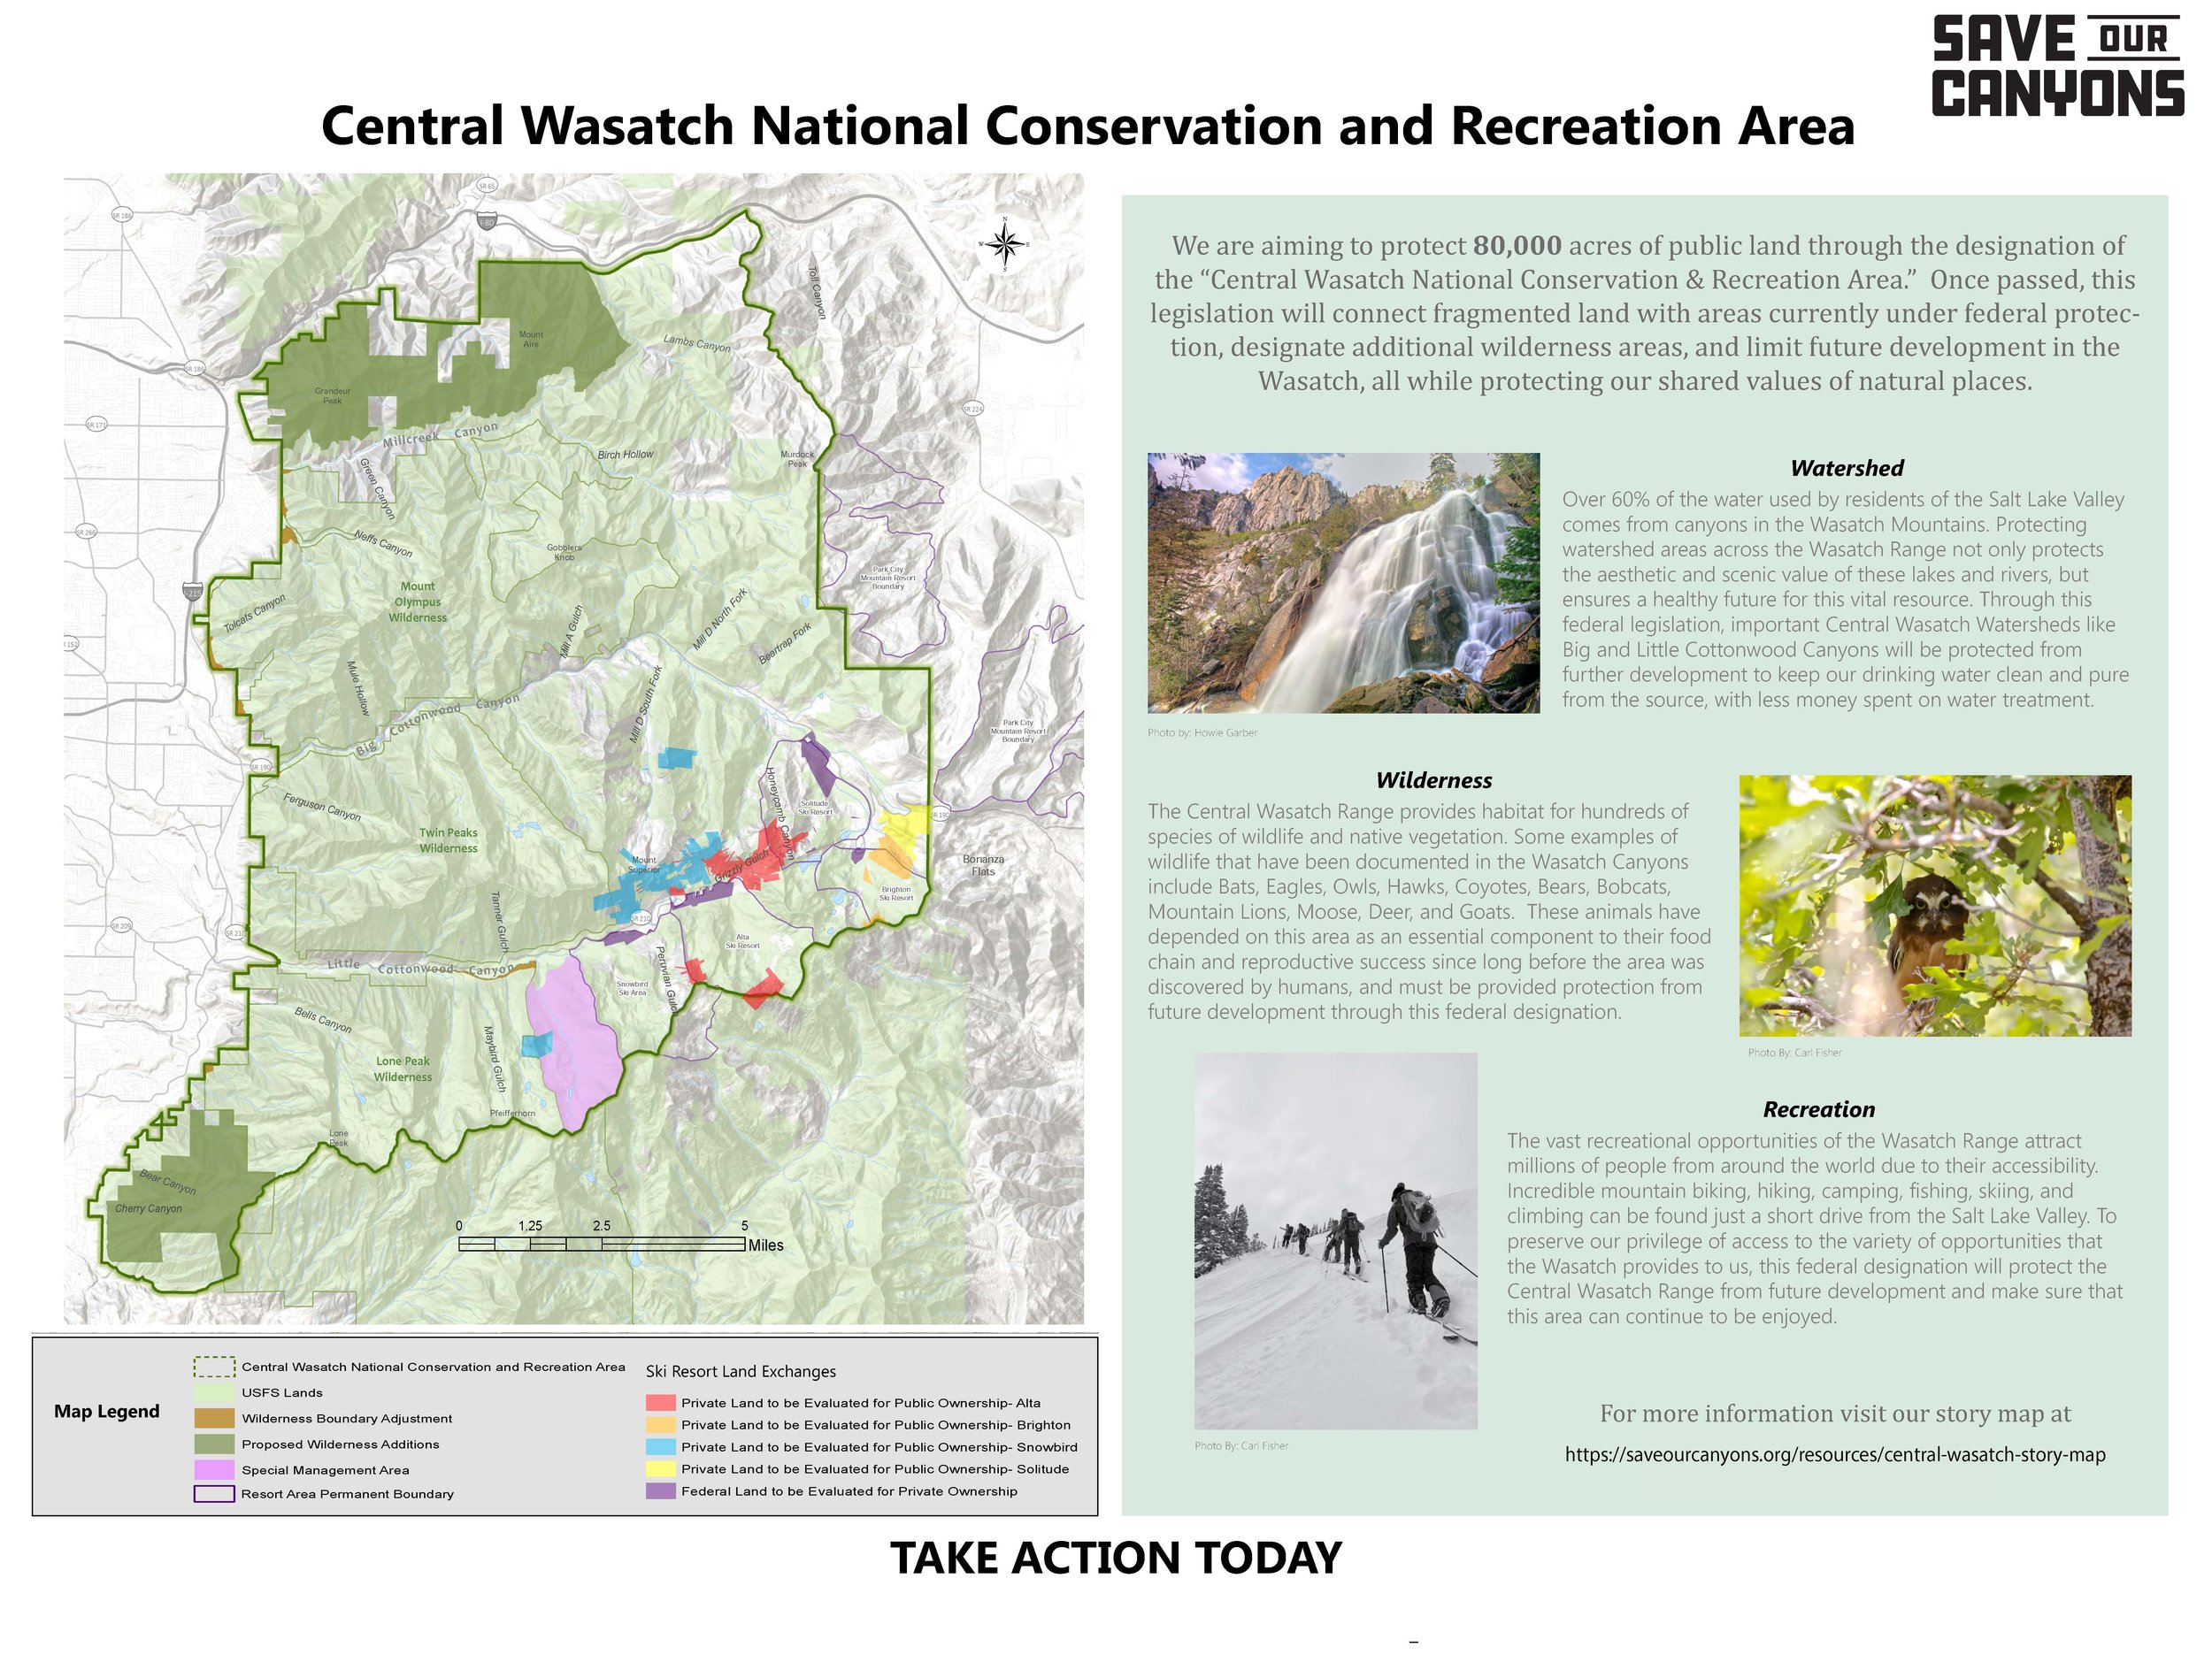 Visualizing conservation in the Central Wasatch -